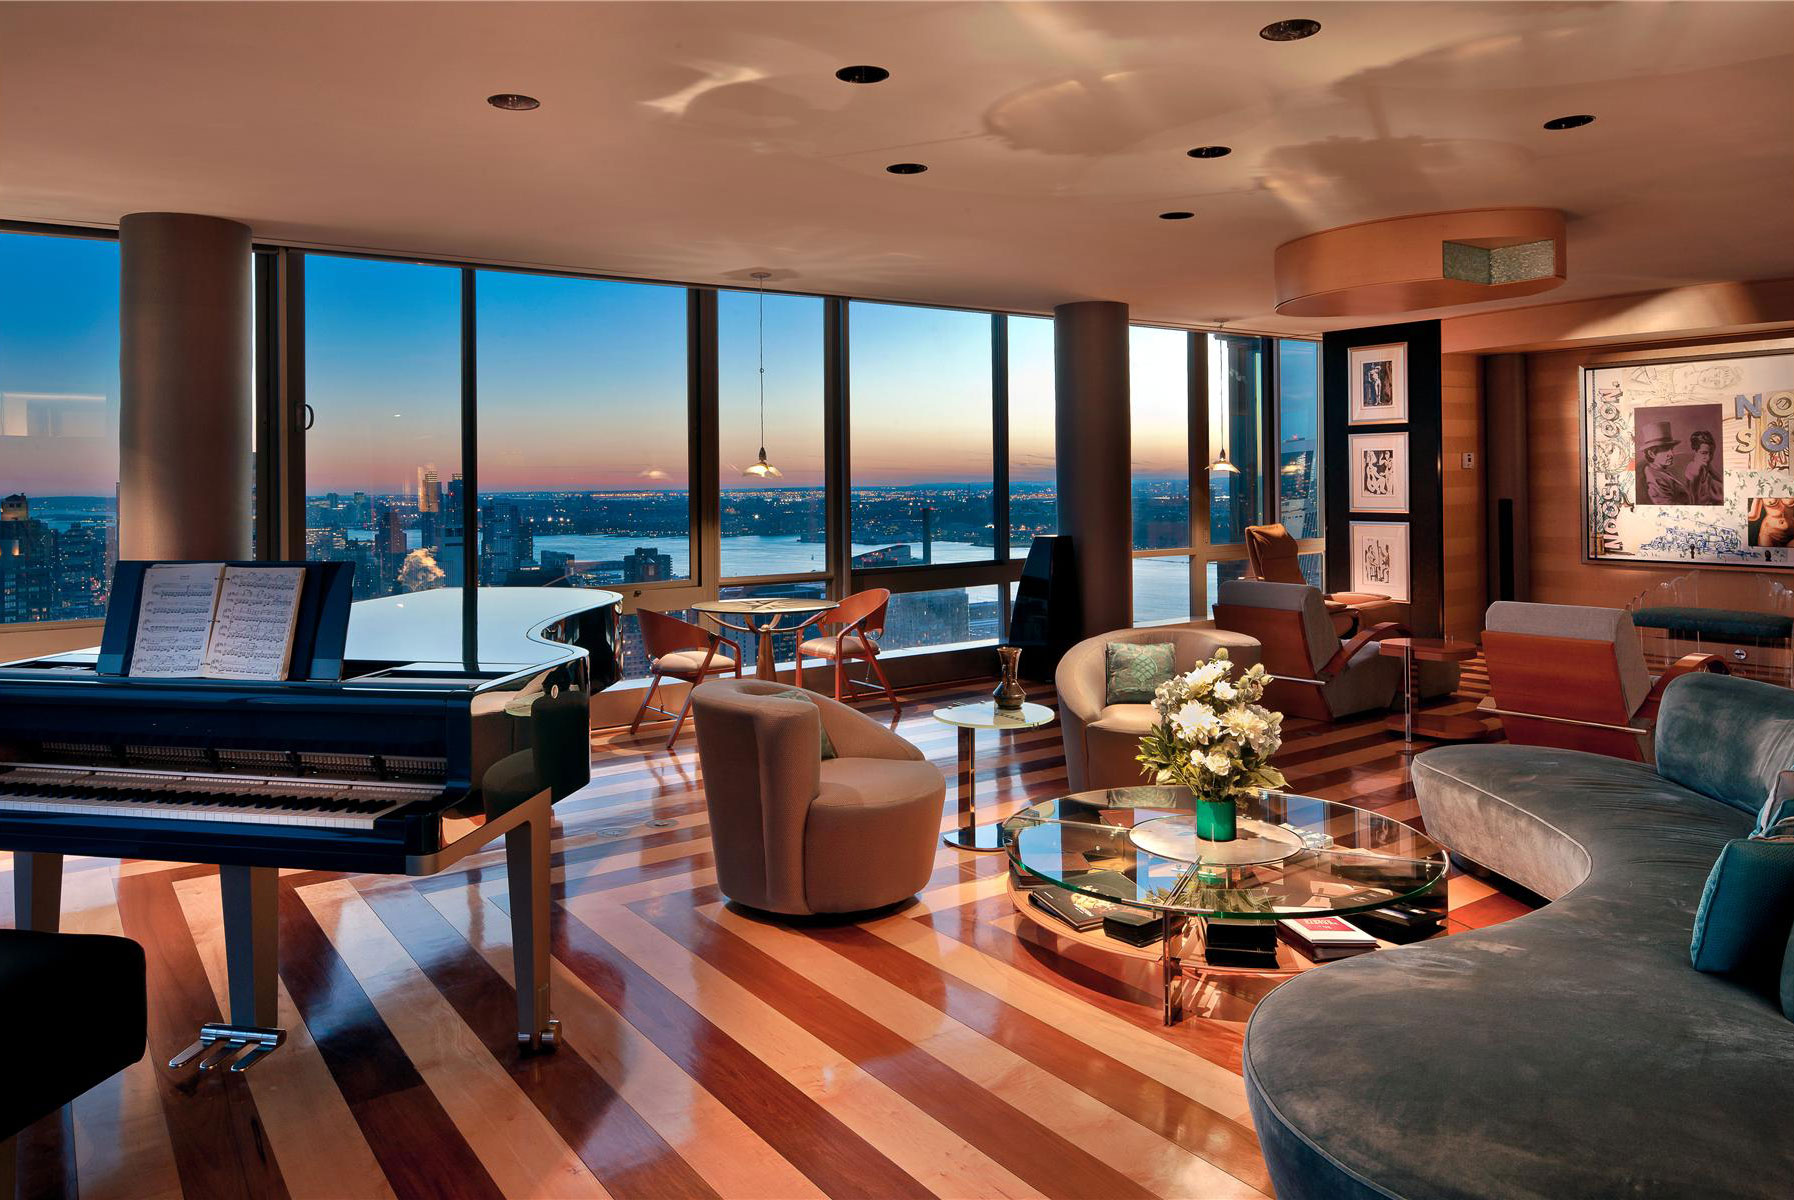 The gartner penthouse for sale in new york city for Luxury apartments for sale nyc